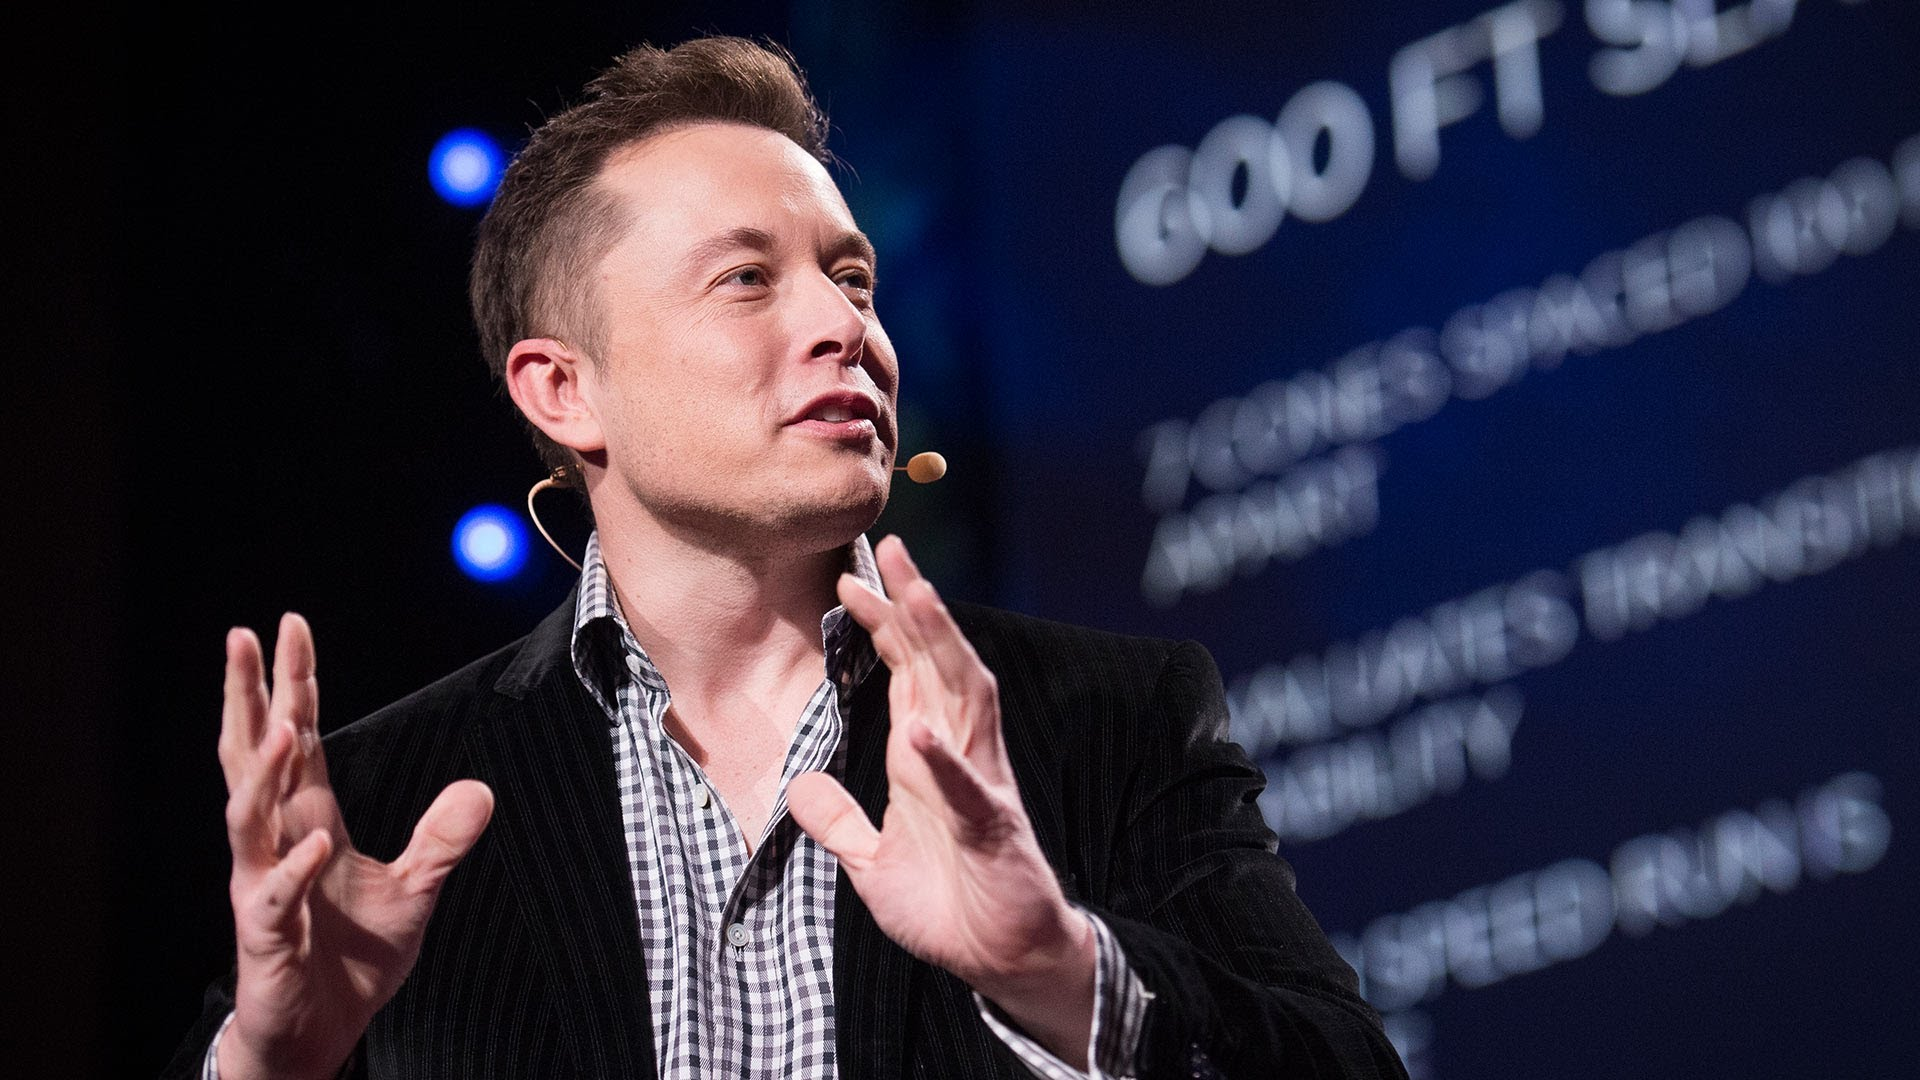 Elon Musk in a 2013 TED Talk on his innovative companies Tesla and SpaceX.